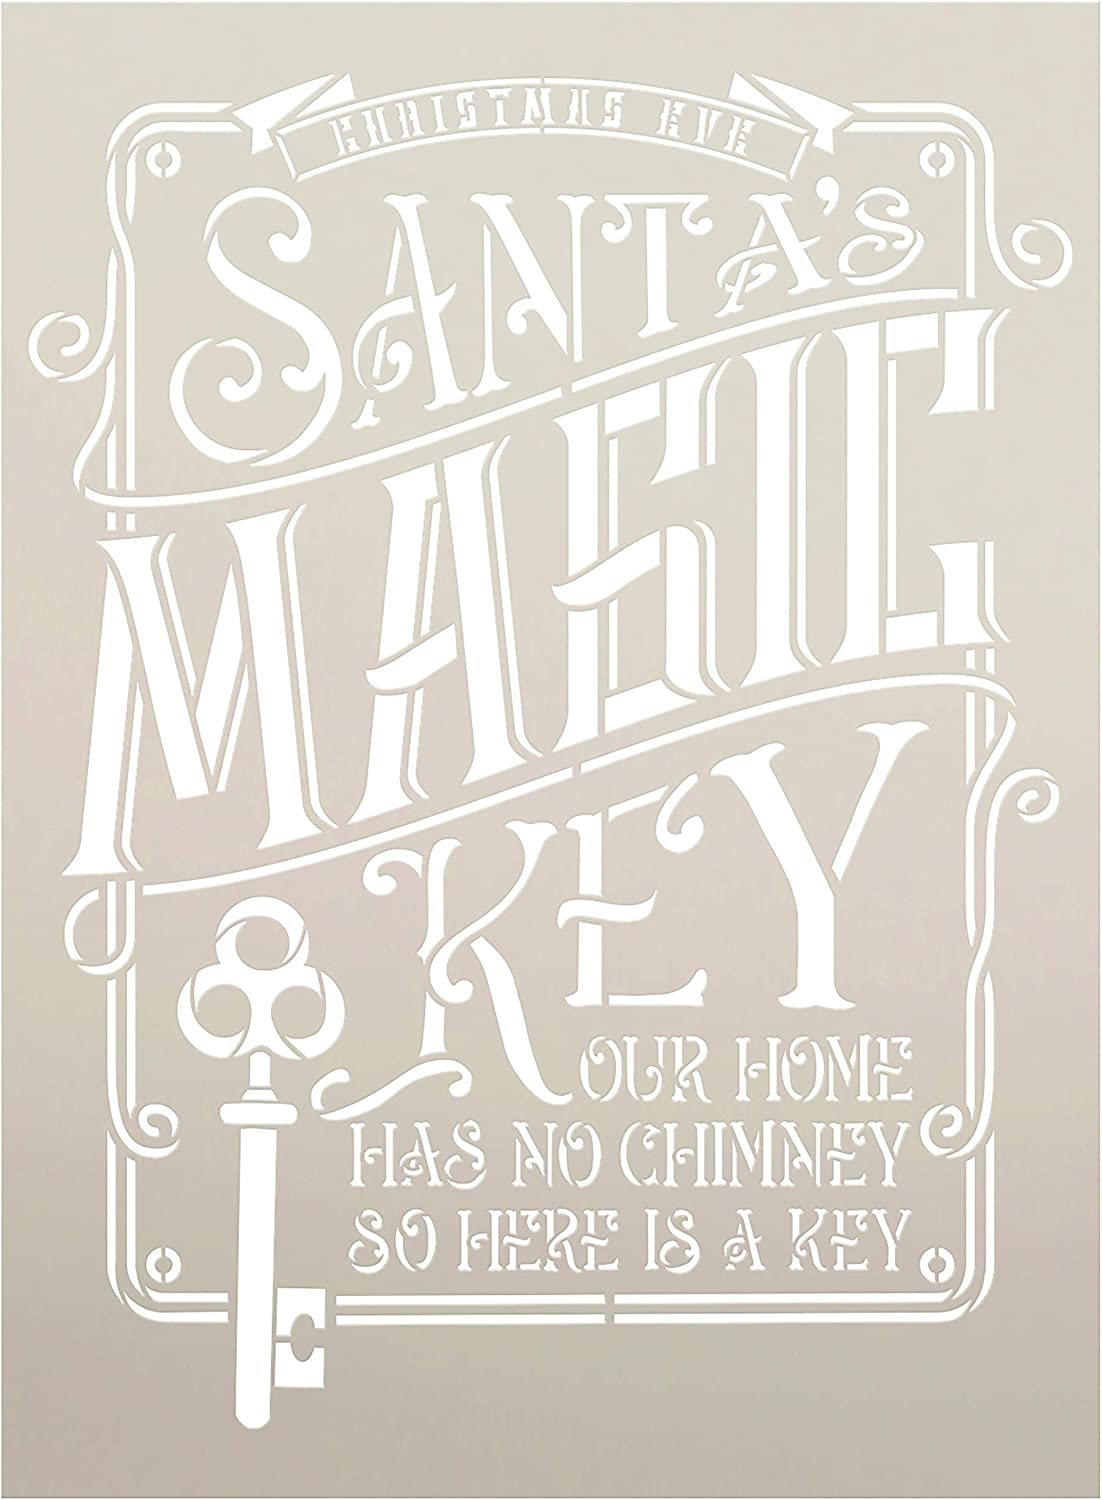 Santa's Magic Key Stencil by StudioR12 | DIY Holiday Home Decor | Vintage Christmas Eve Word Art | Home Has No Chimney | Craft & Paint Wood Signs | Reusable Mylar Template | Size (11 x 15 inch)